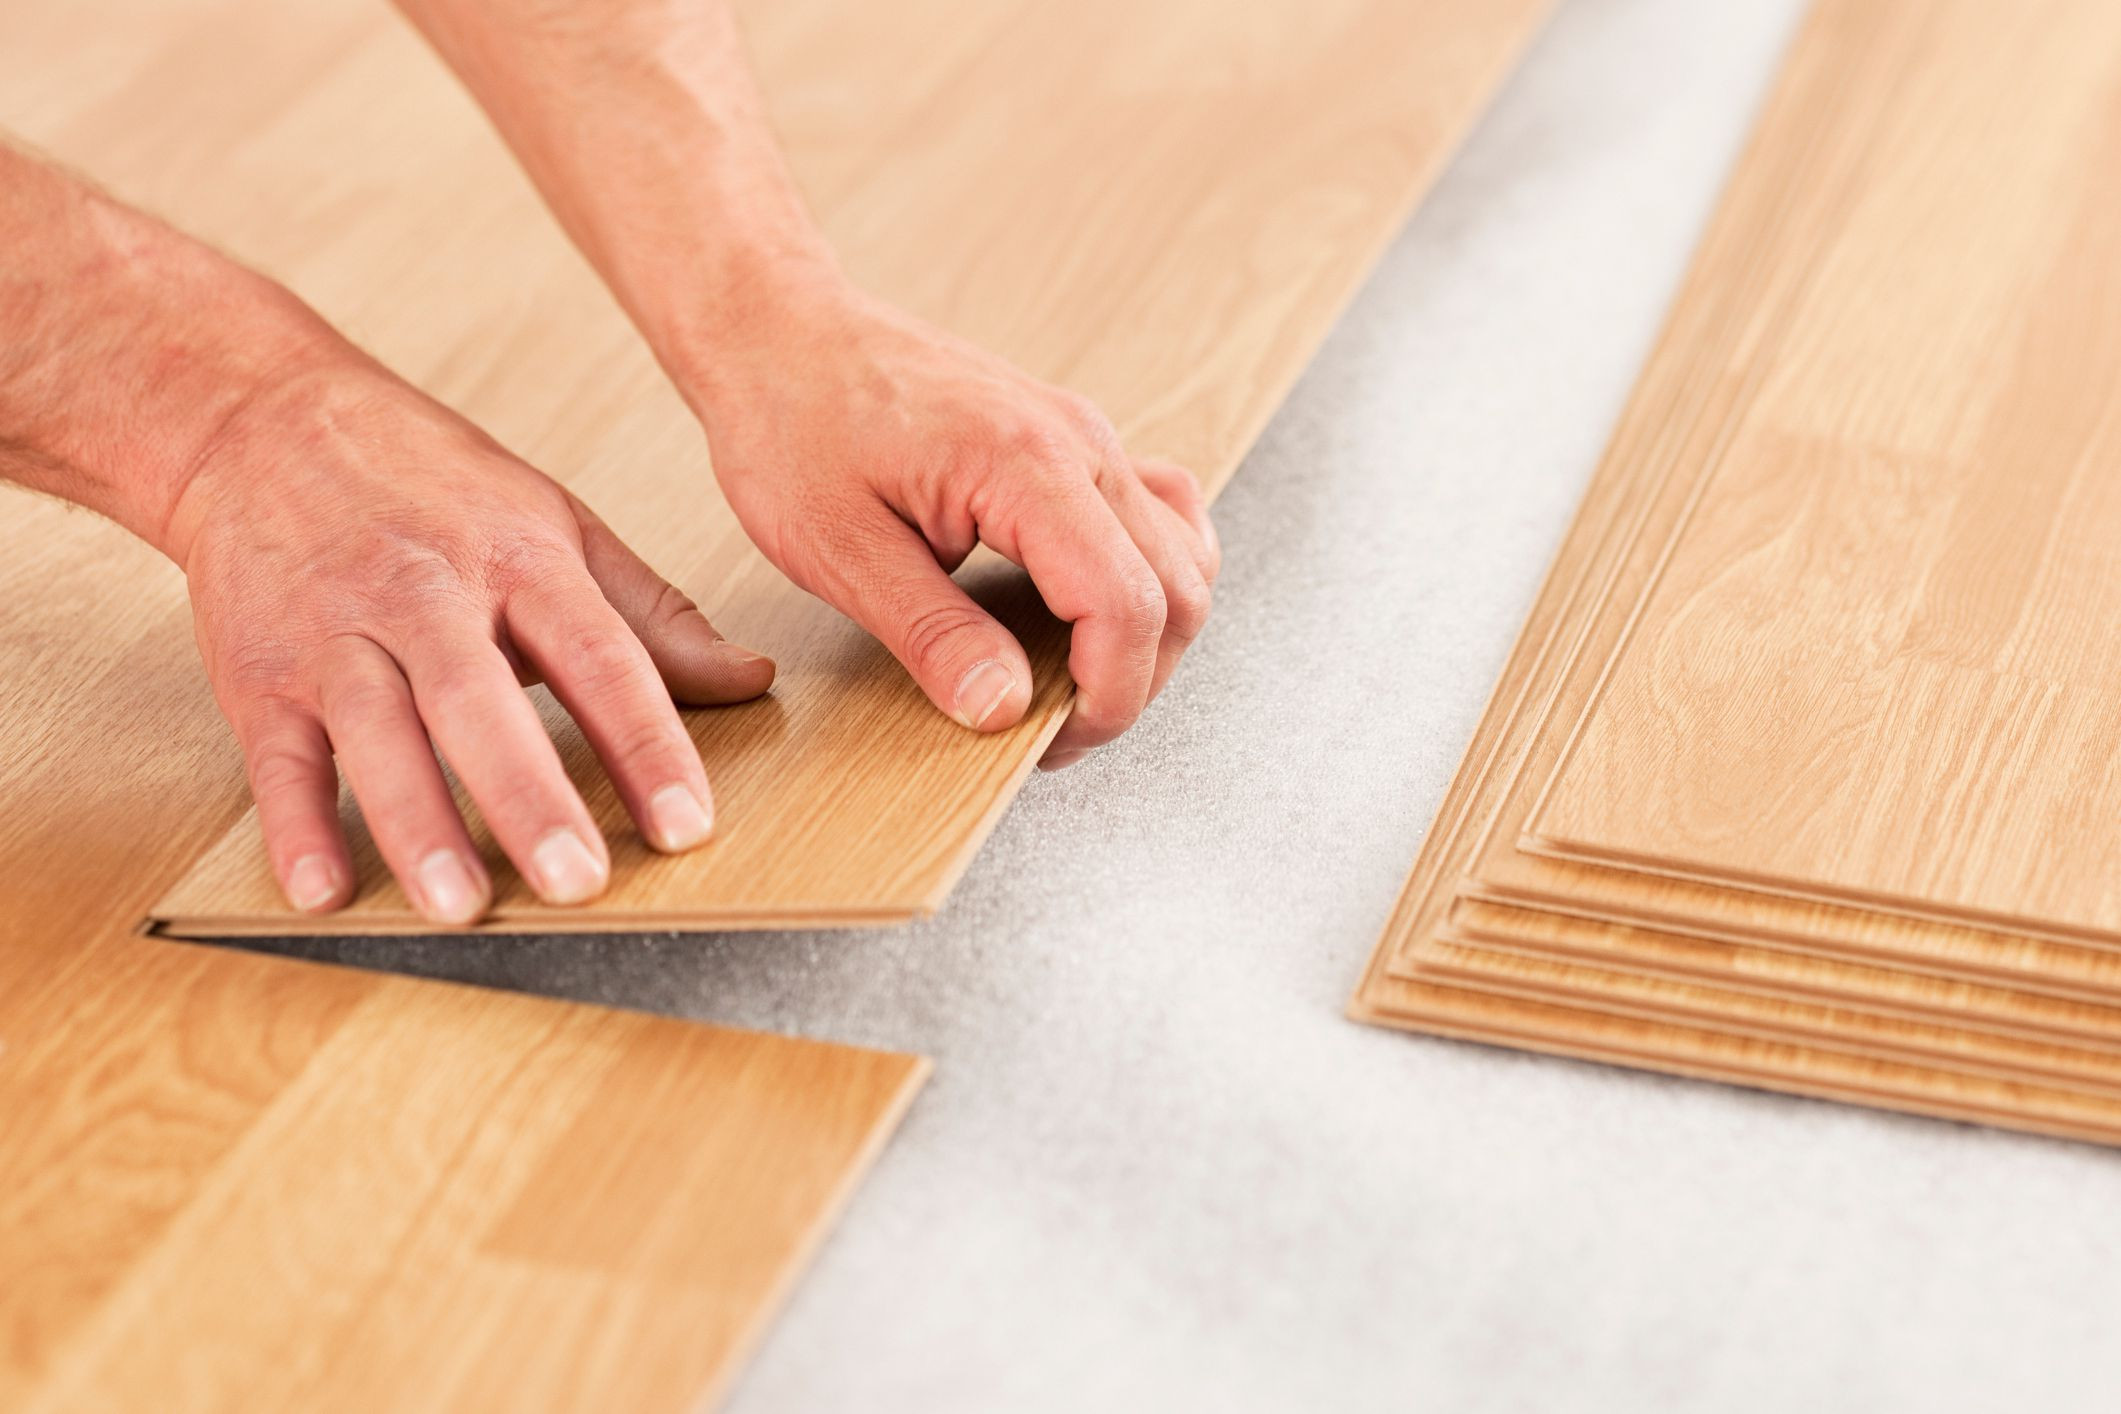 bamboo flooring vs hardwood pros and cons of laminate underlayment pros and cons inside laminate floor install gettyimages 154961561 588816495f9b58bdb3da1a02